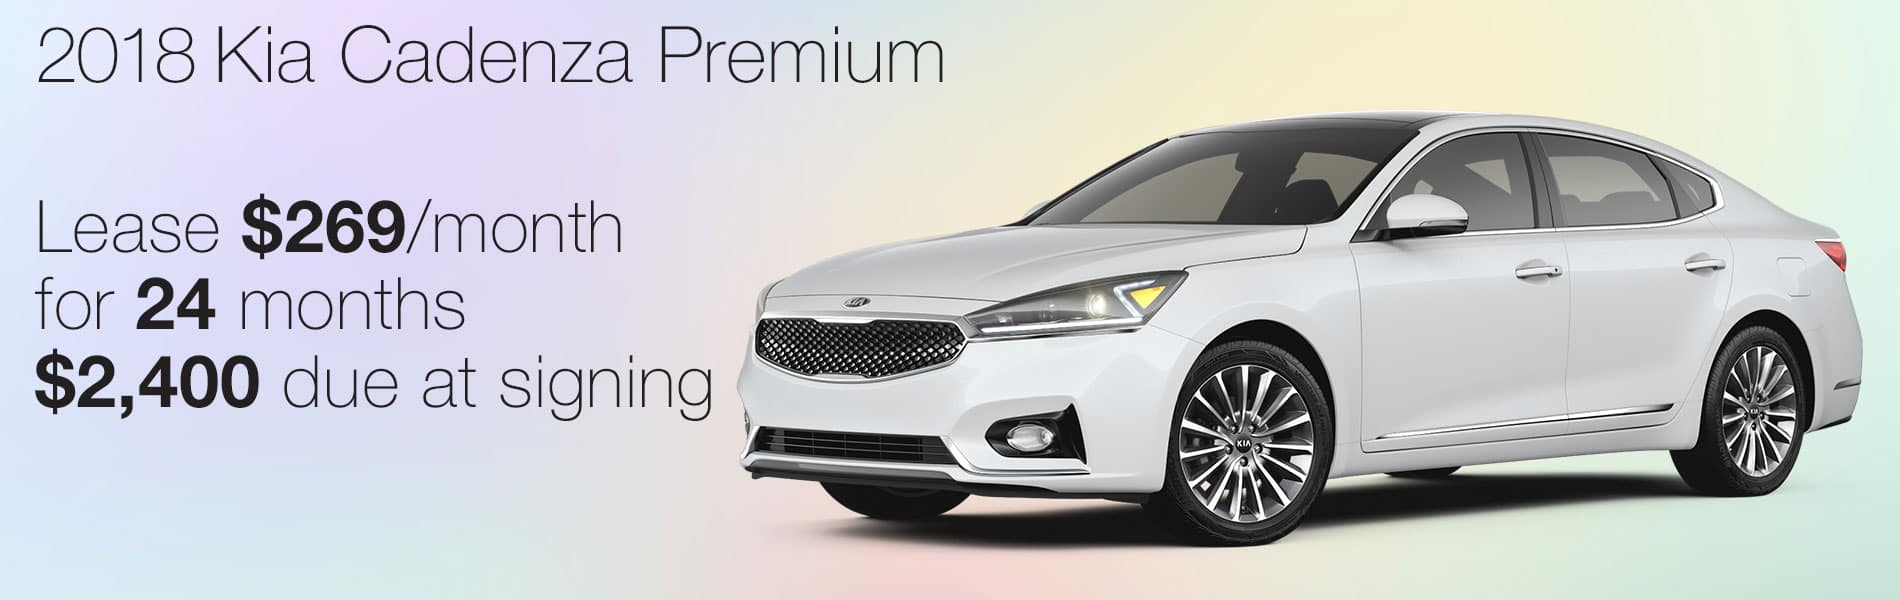 Lease a 2018 Kia Cadenza Premium for $269 per month with $2,400 due at signing